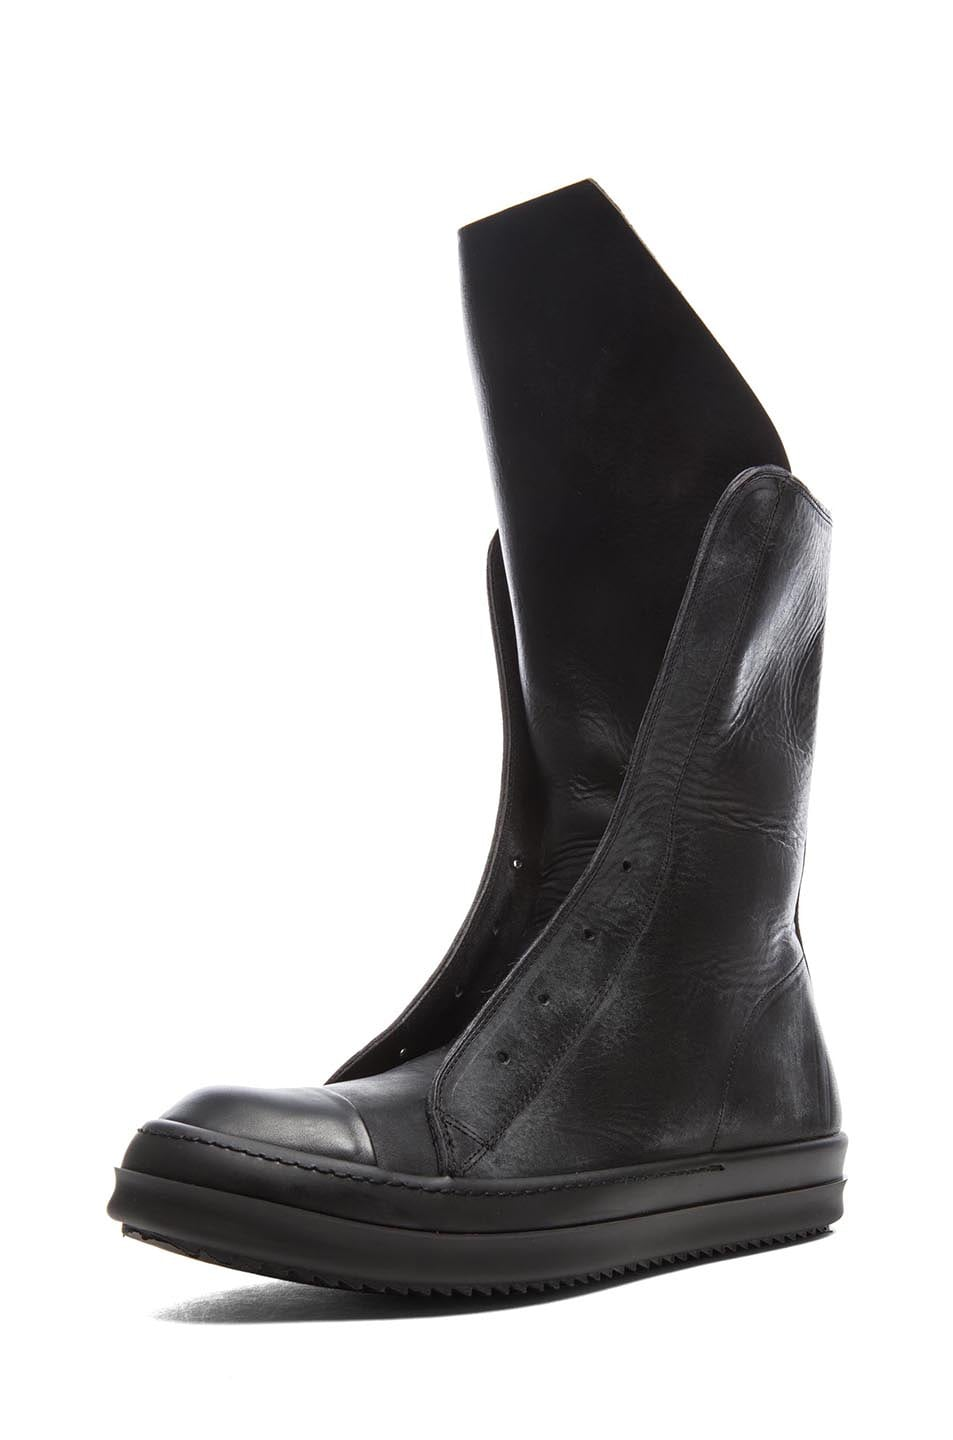 Rick Owens Leather Boots Discount Choice Clearance Very Cheap Buy Cheap Price Many Styles Order Cheap Price 5RNLAbN0tH